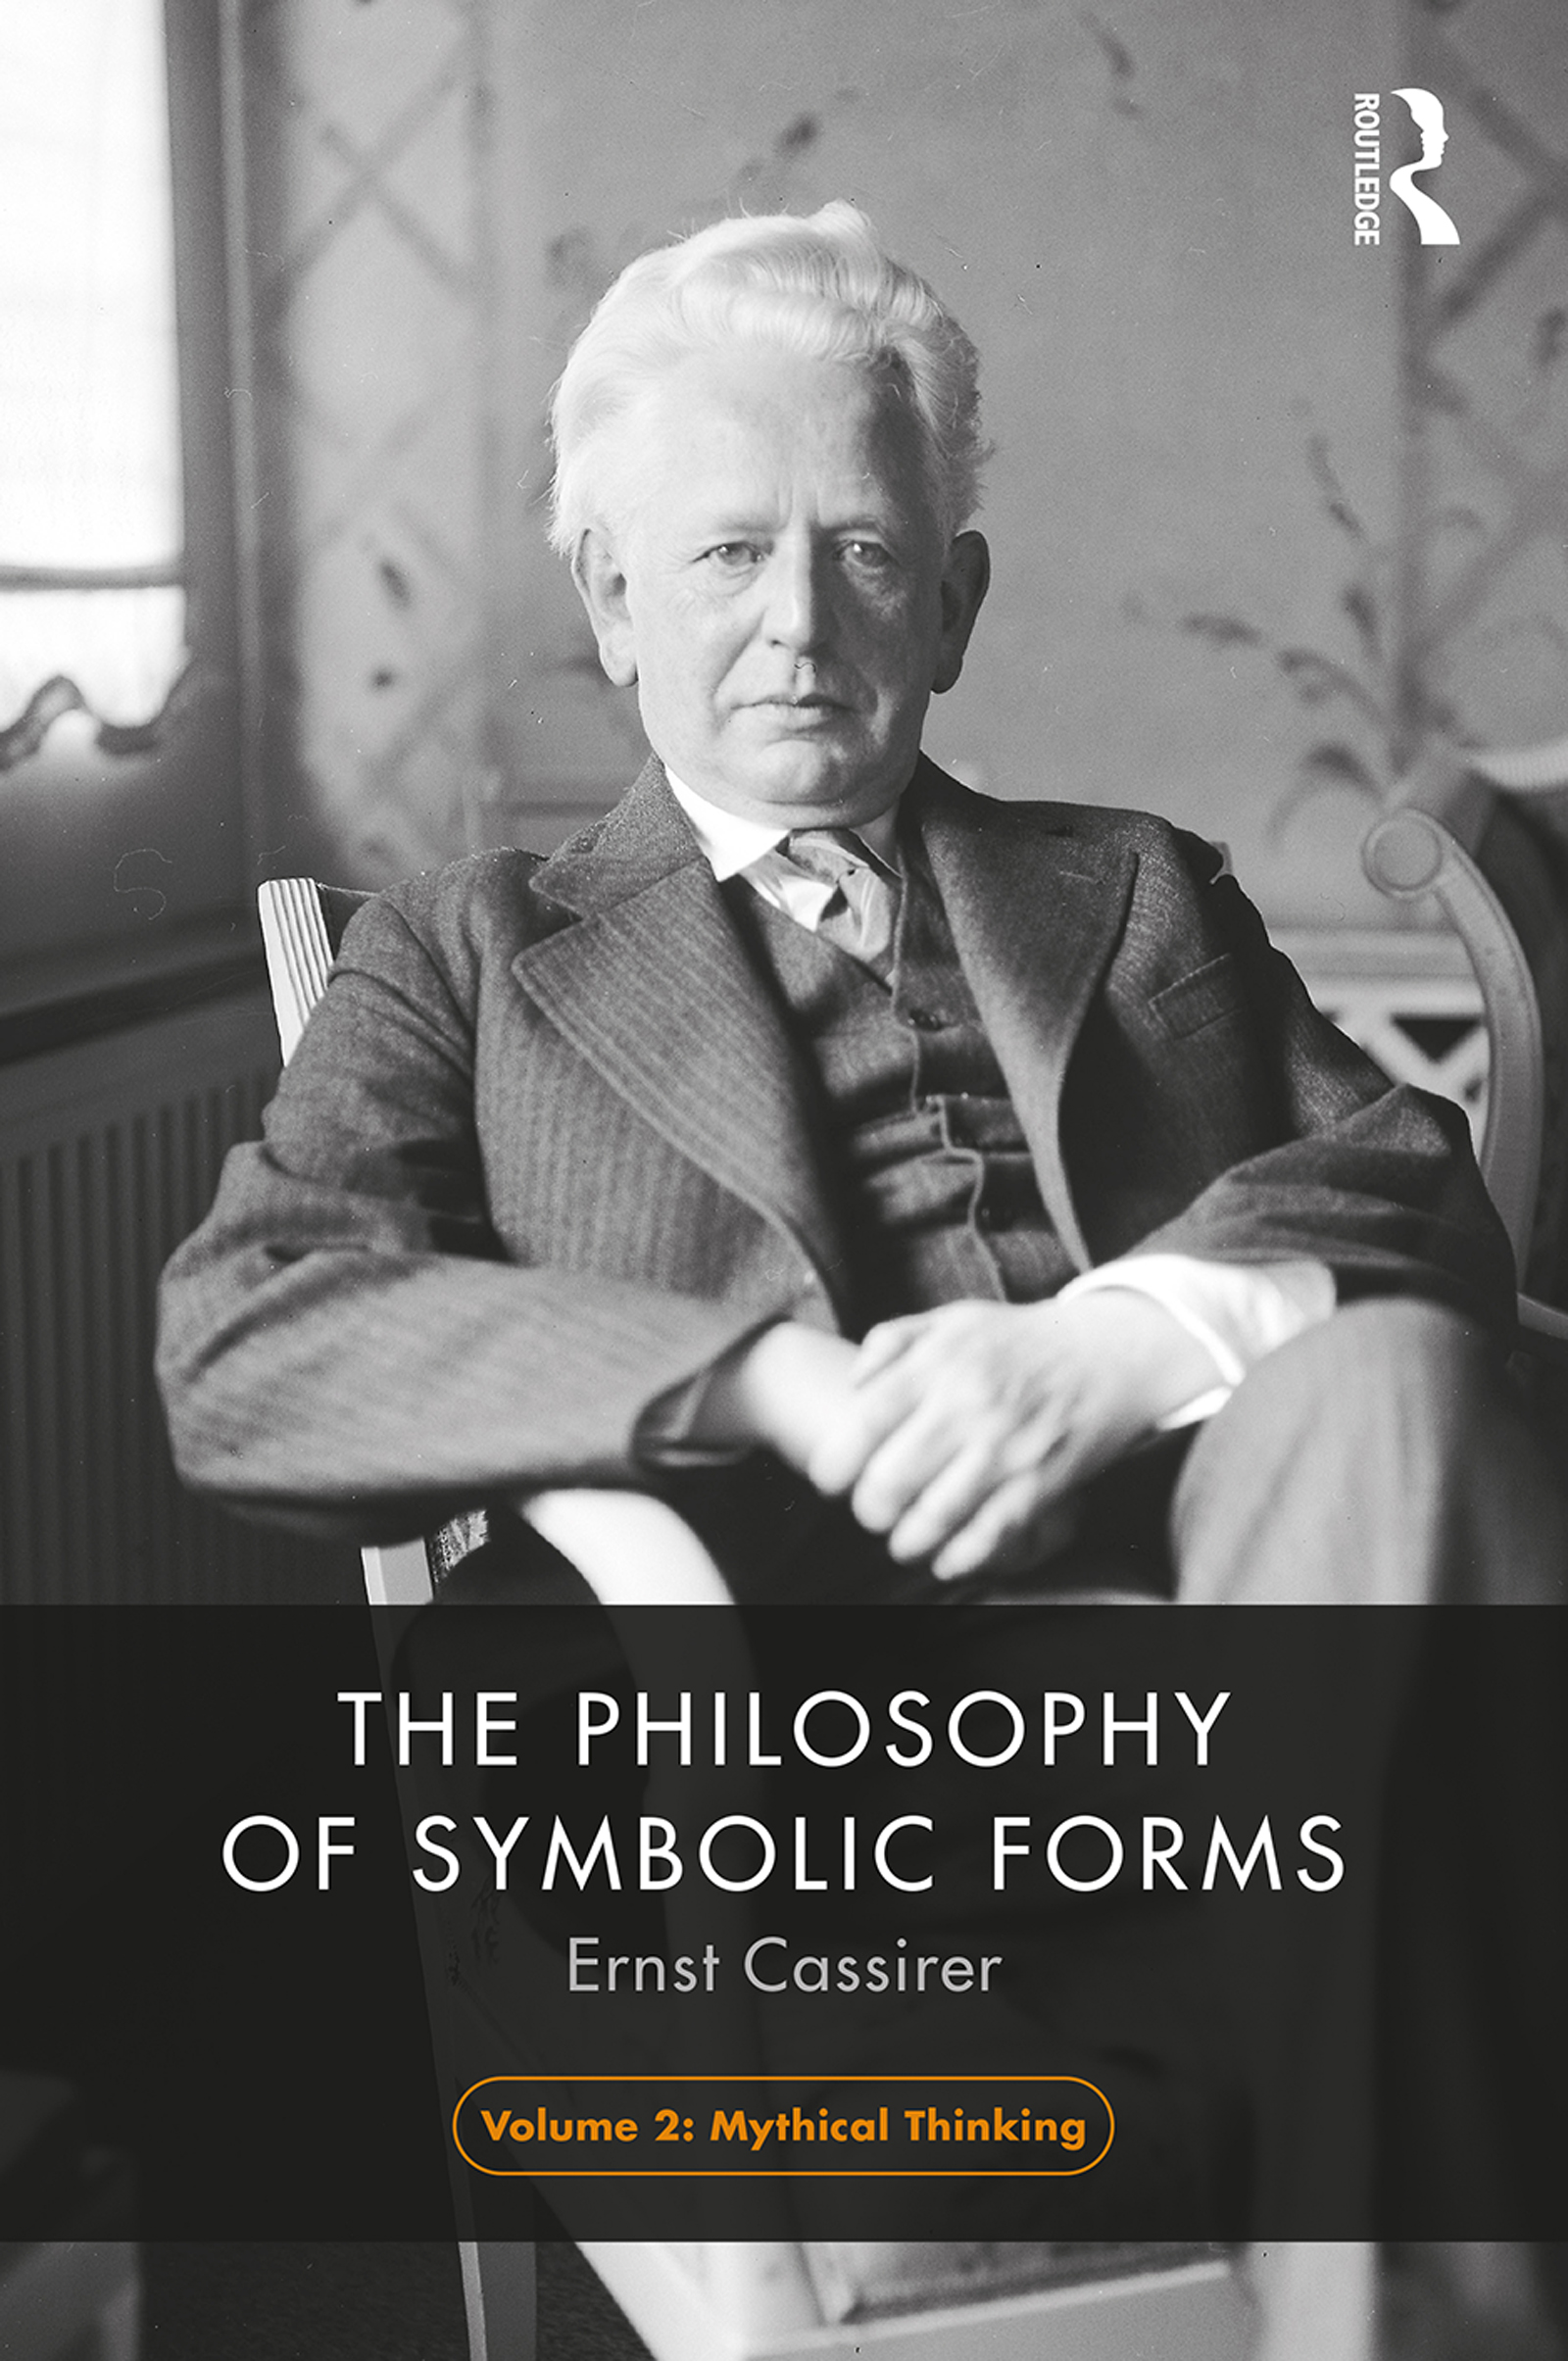 The Philosophy of Symbolic Forms, Volume 2